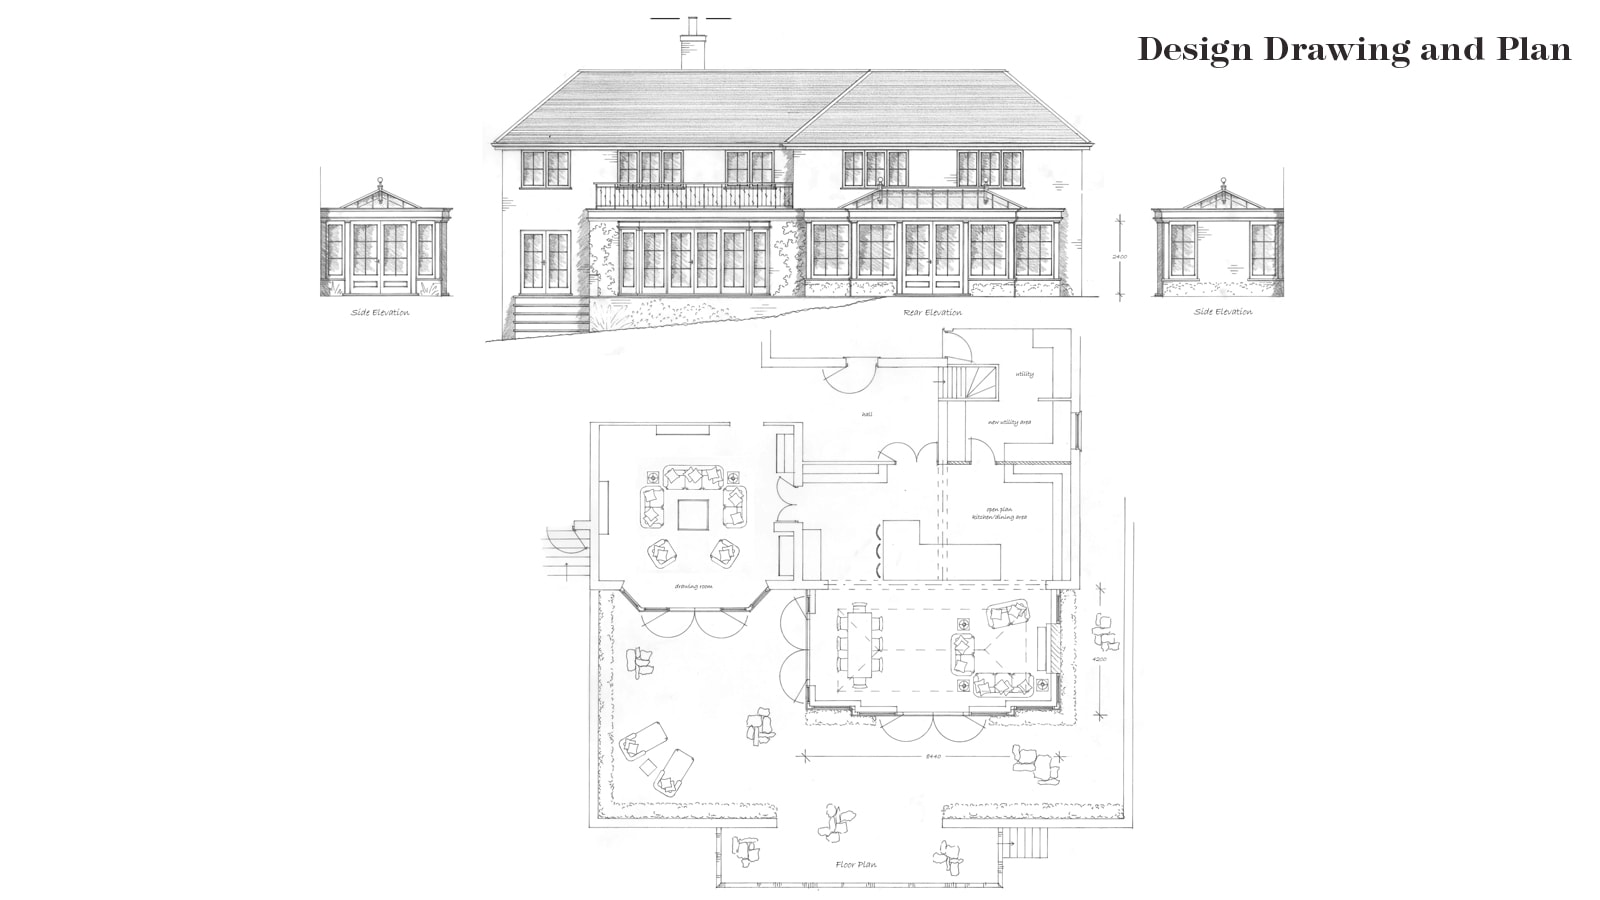 Orangery Design Drawing